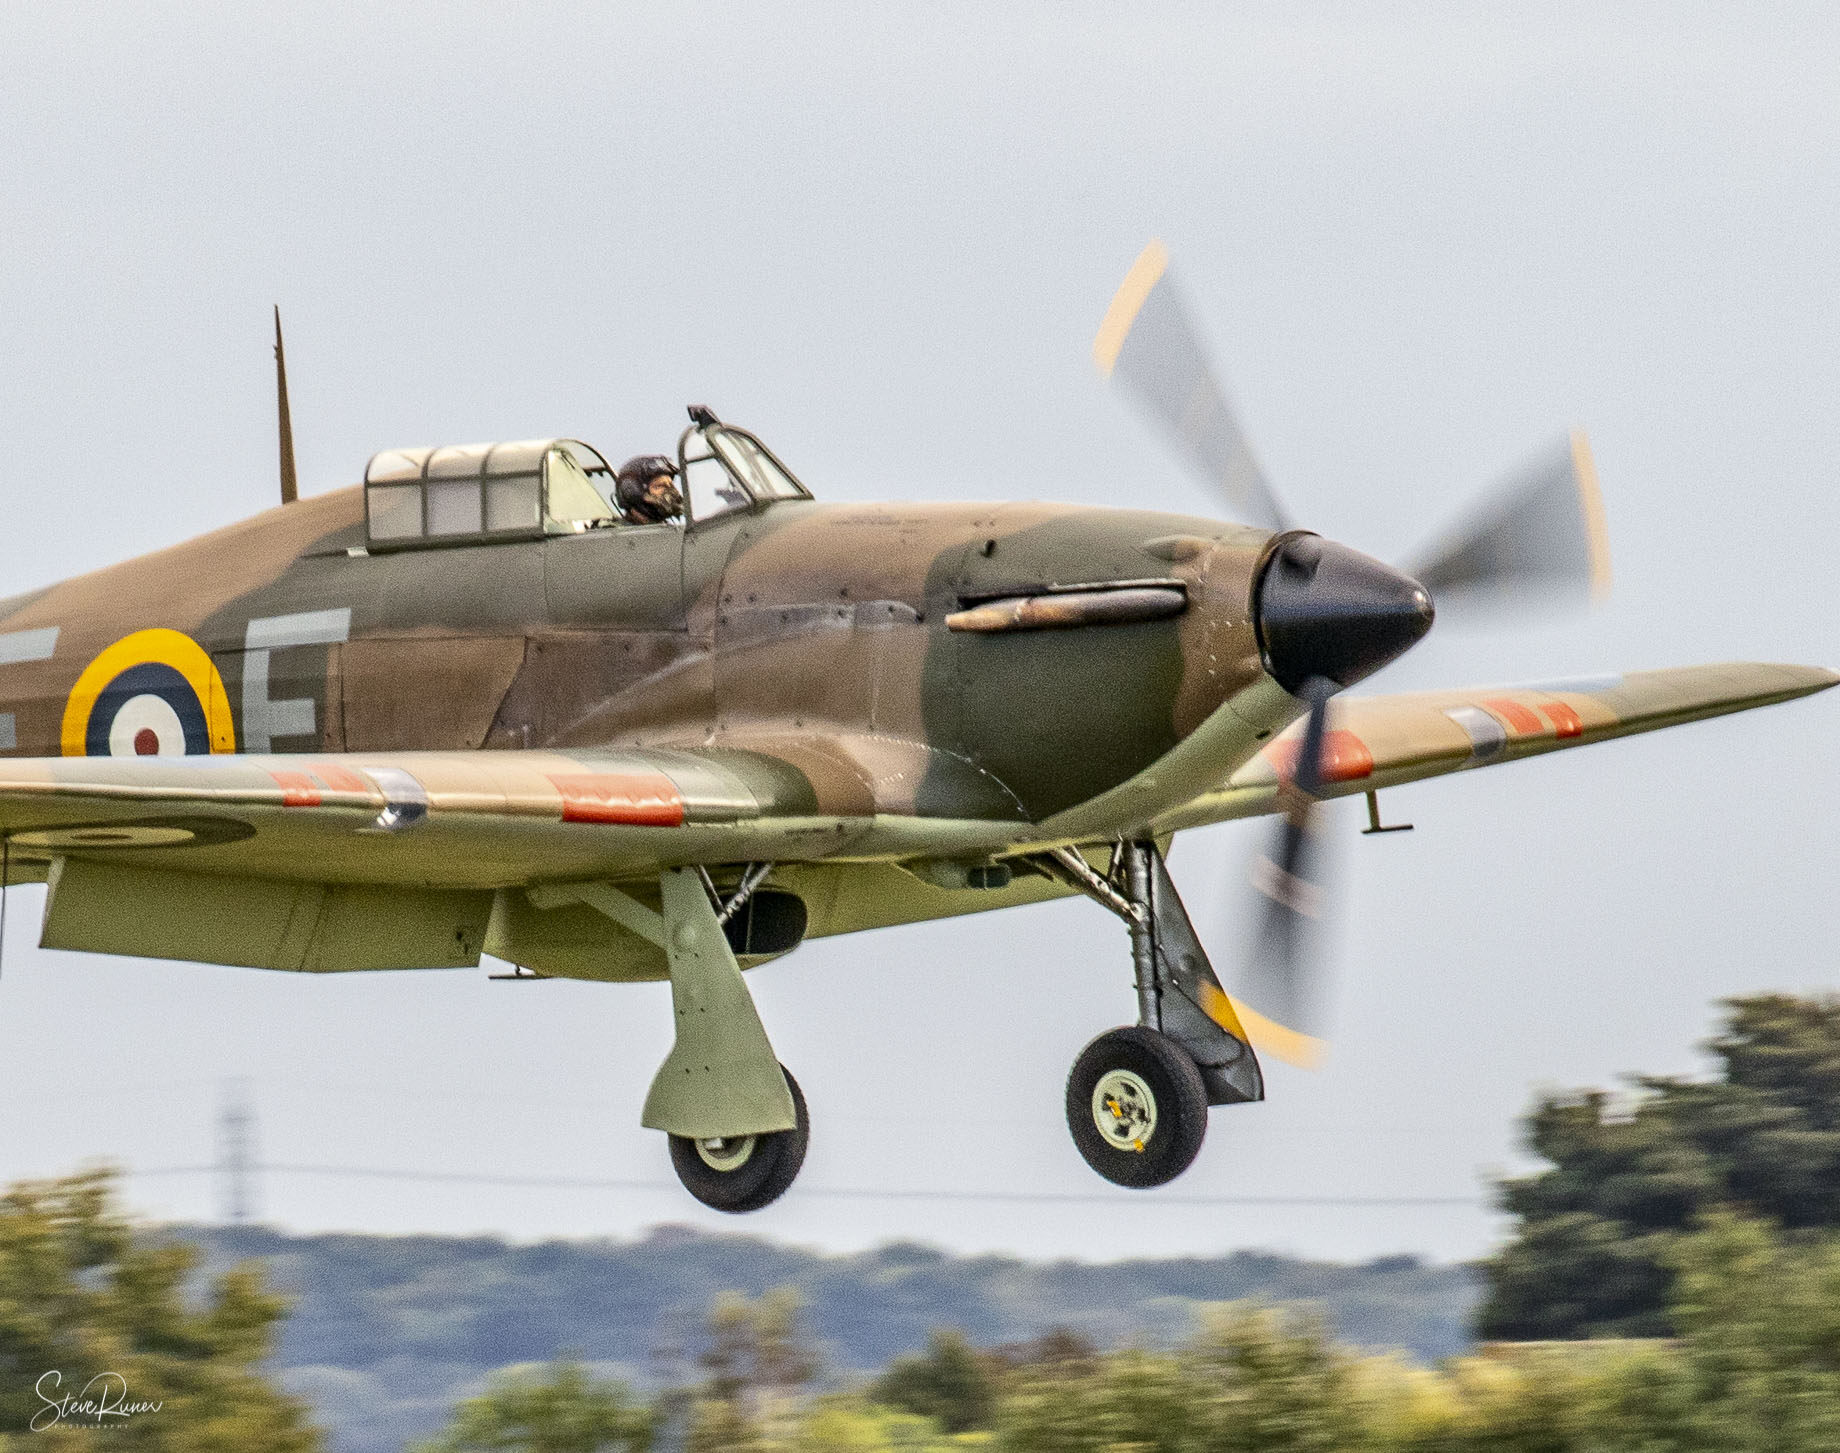 duxford_sunday_23sep18-417-Edit